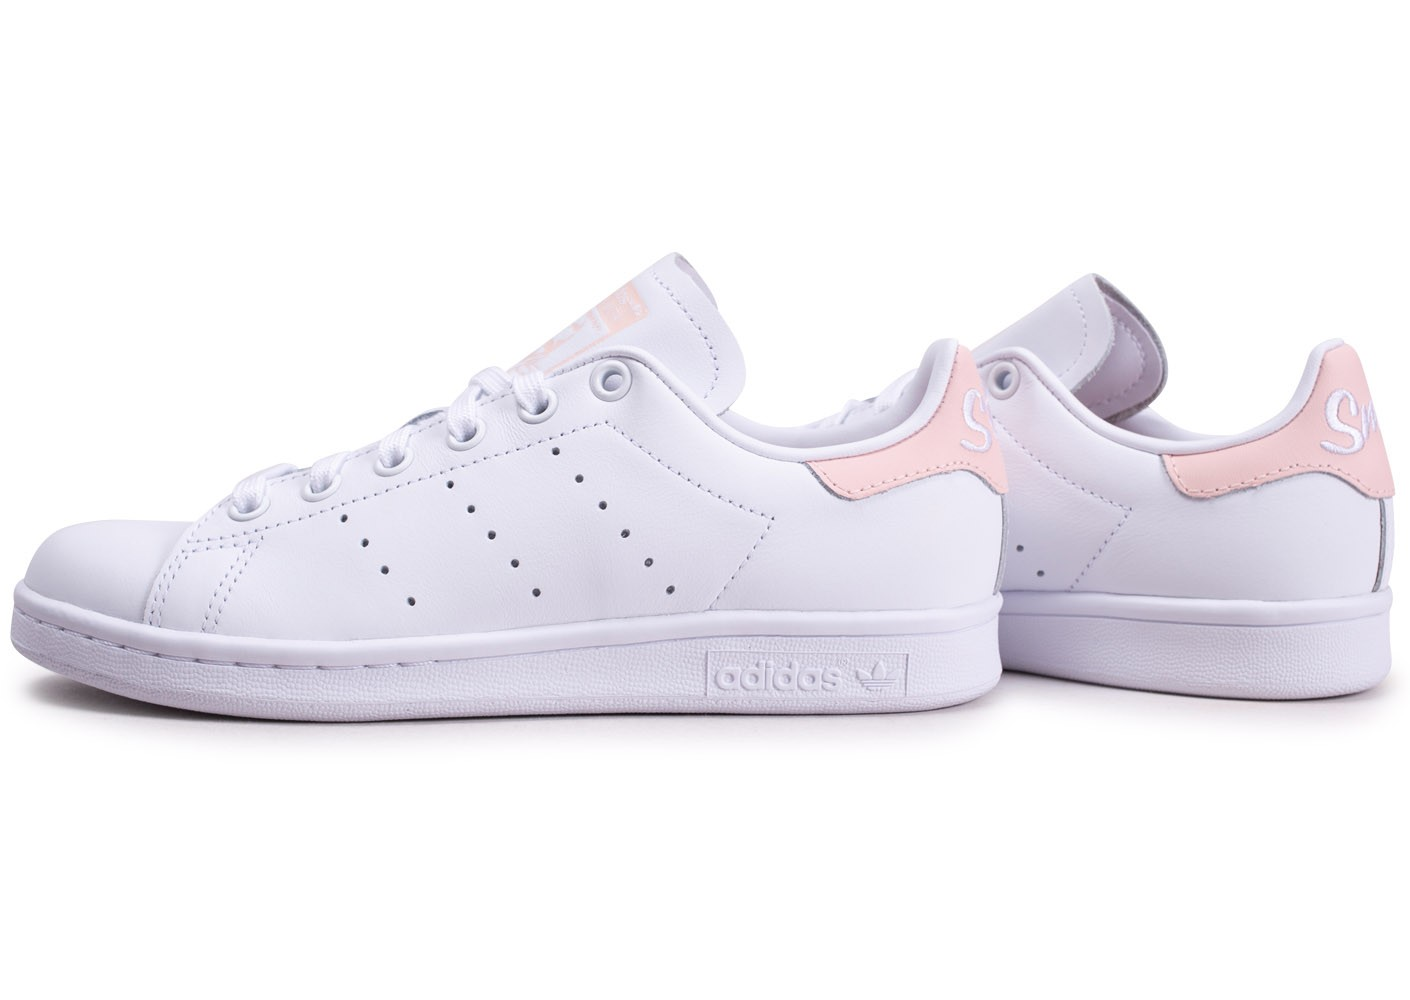 adidas stan smith femme rose et blanche